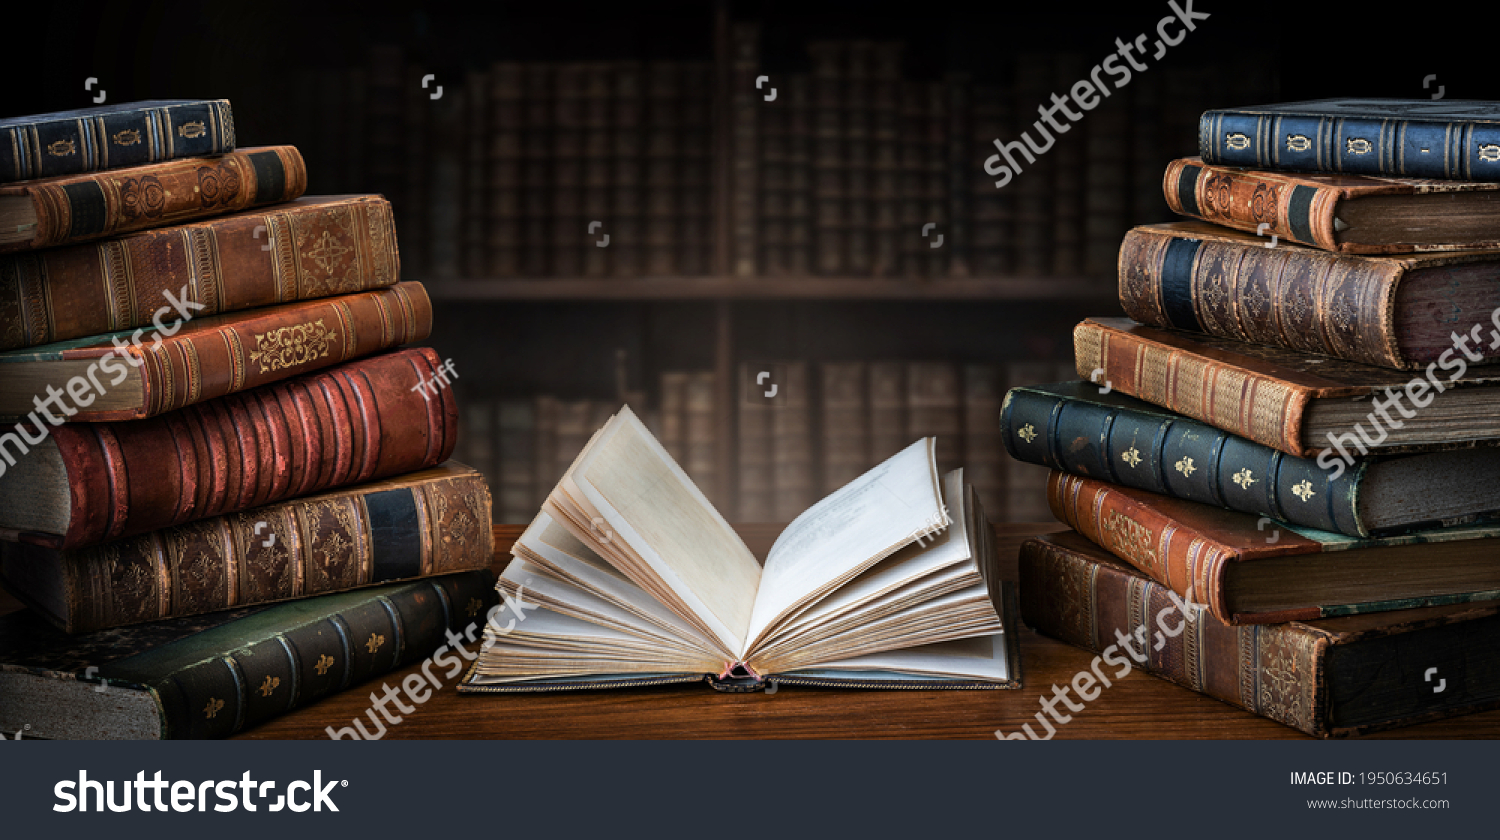 Opened book and stacks of old books on wooden desk in old library. Ancient books historical background. Retro style. Conceptual background on history, education, literature topics. #1950634651